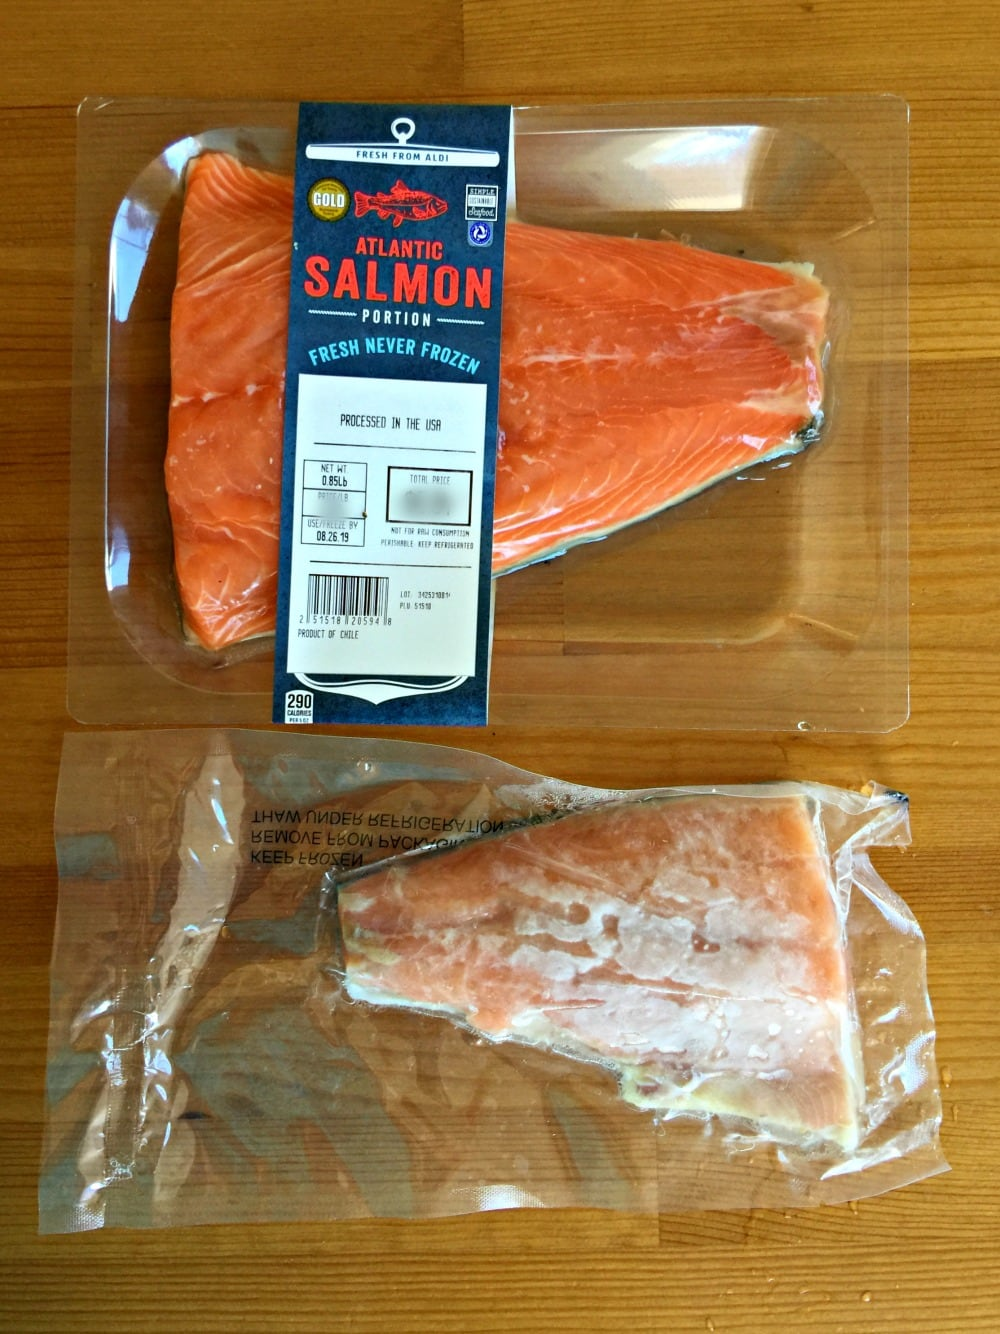 Fresh and frozen salmon side by side on a wooden table.